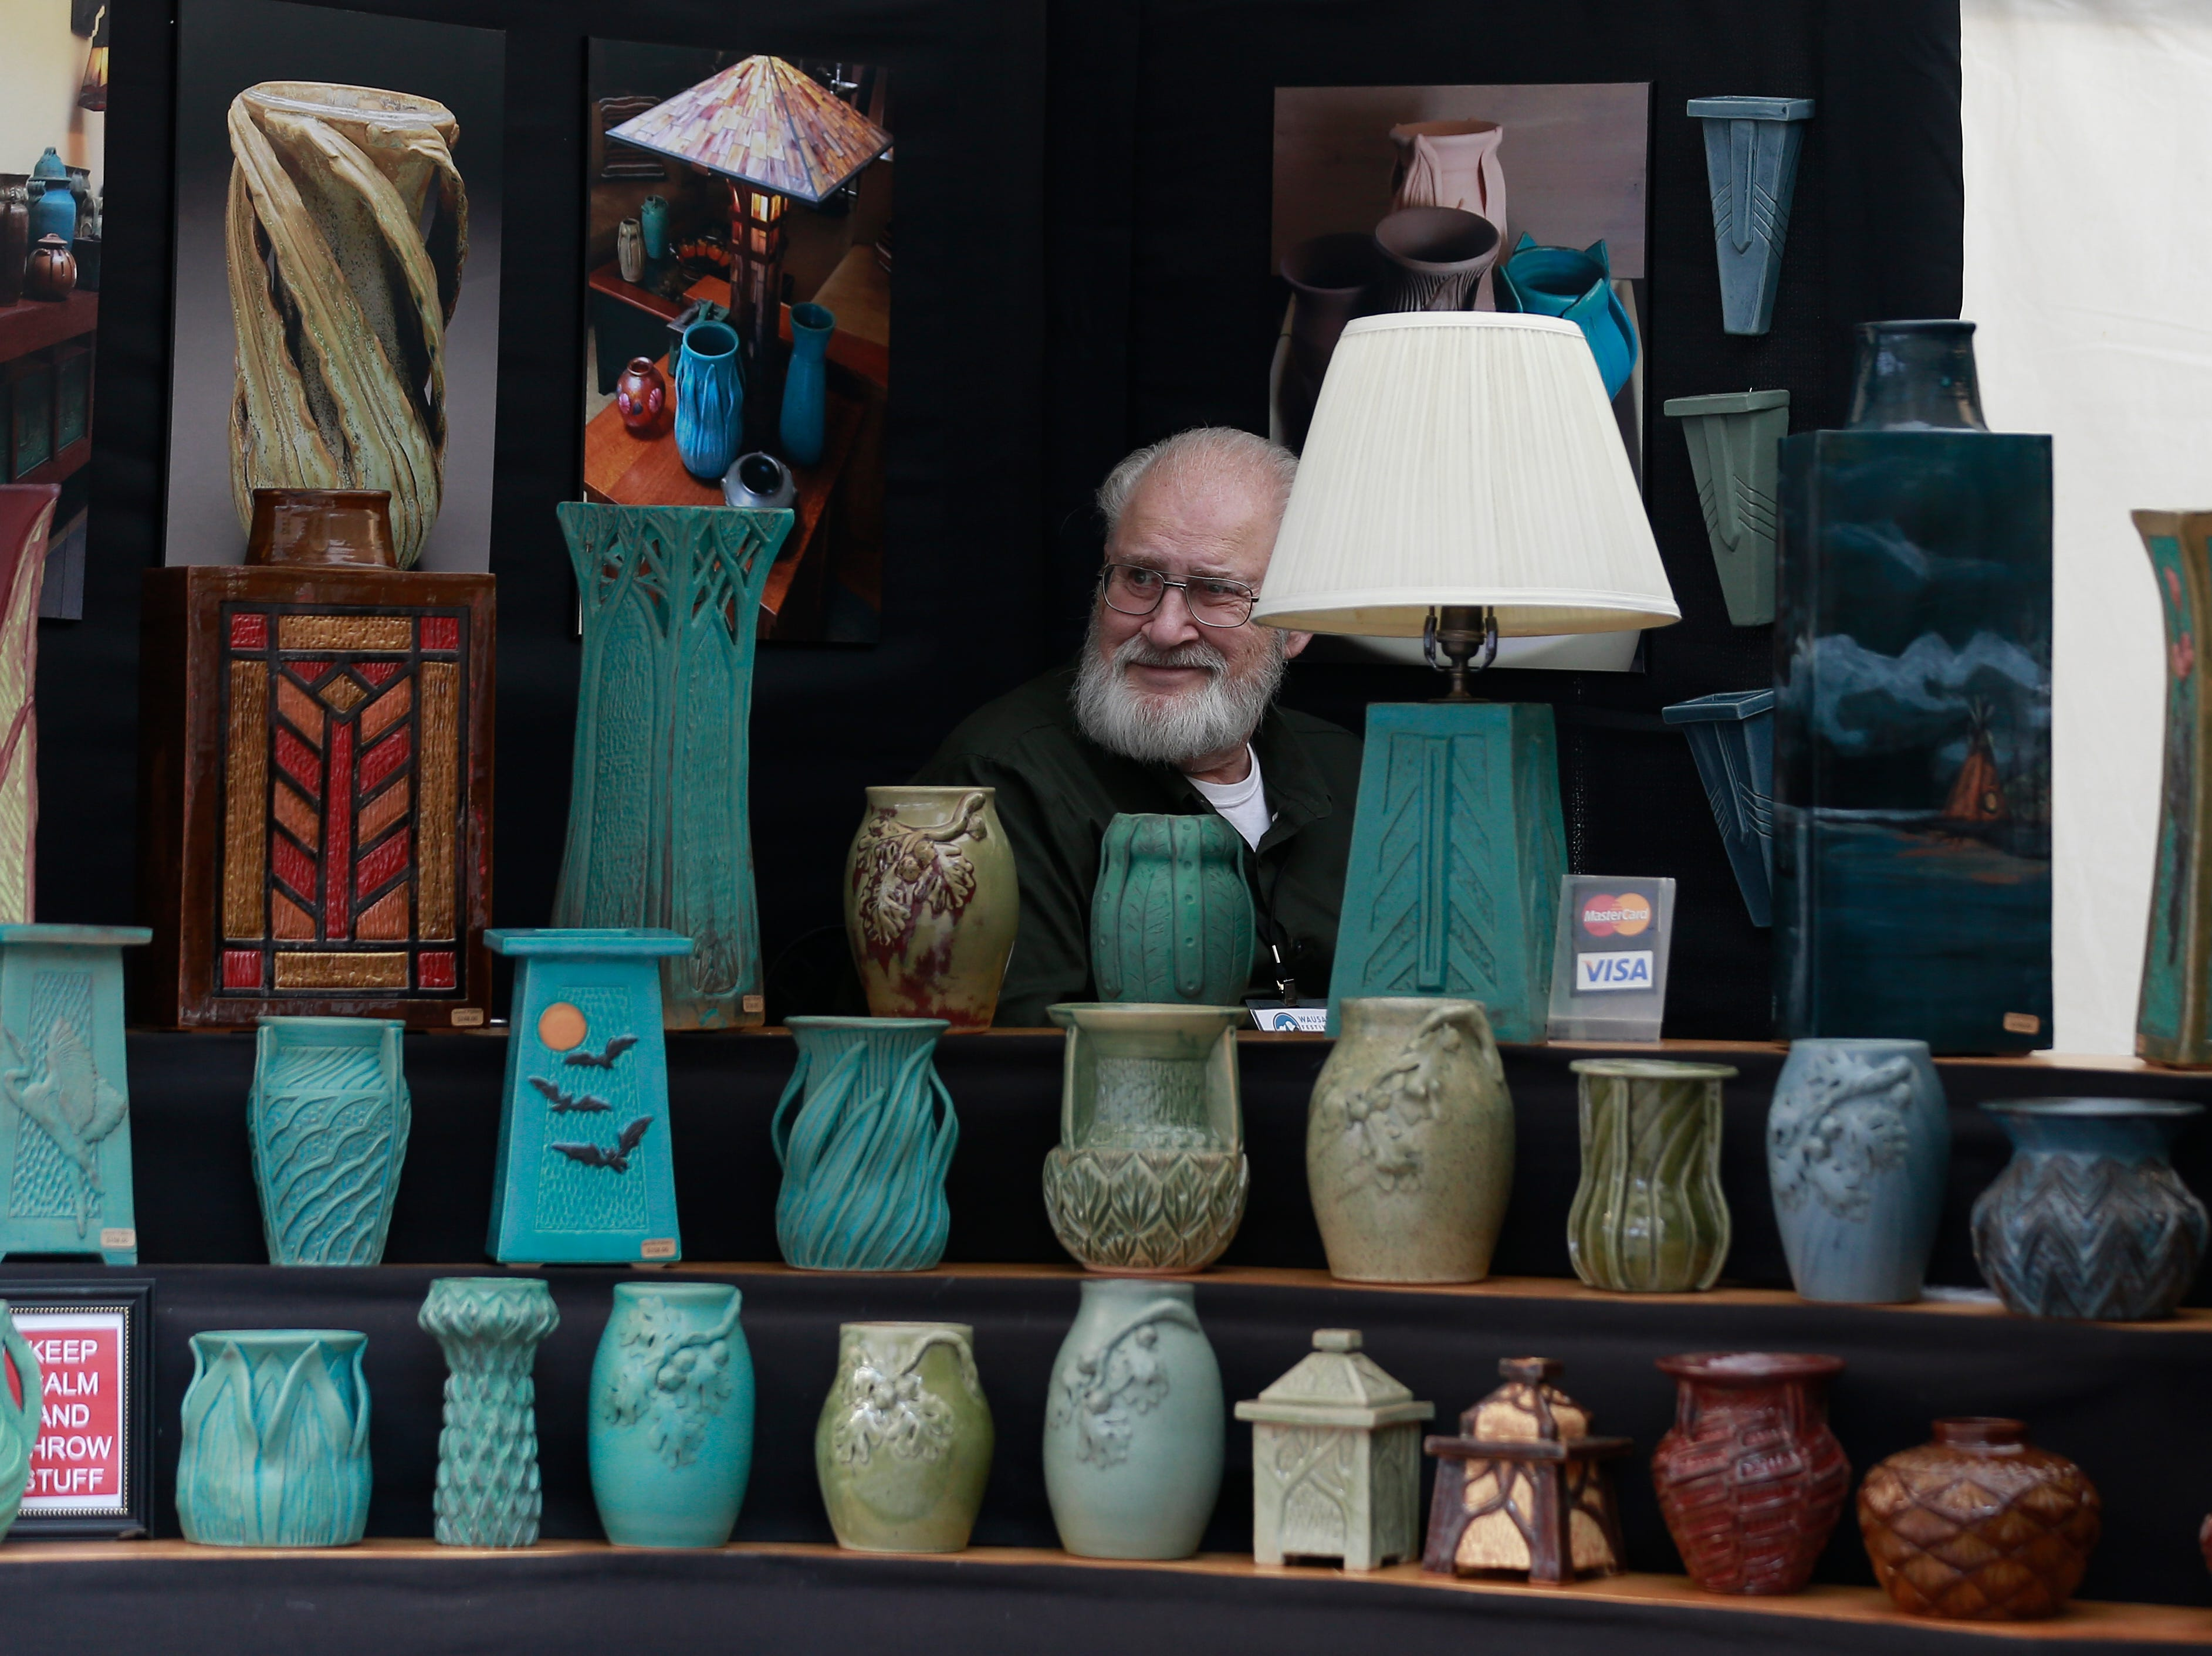 Wausau Festival of Arts held its 2018 event Saturday, Sept. 8, 2018, in downtown Wausau, Wis. T'xer Zhon Kha/USA TODAY NETWORK-Wisconsin